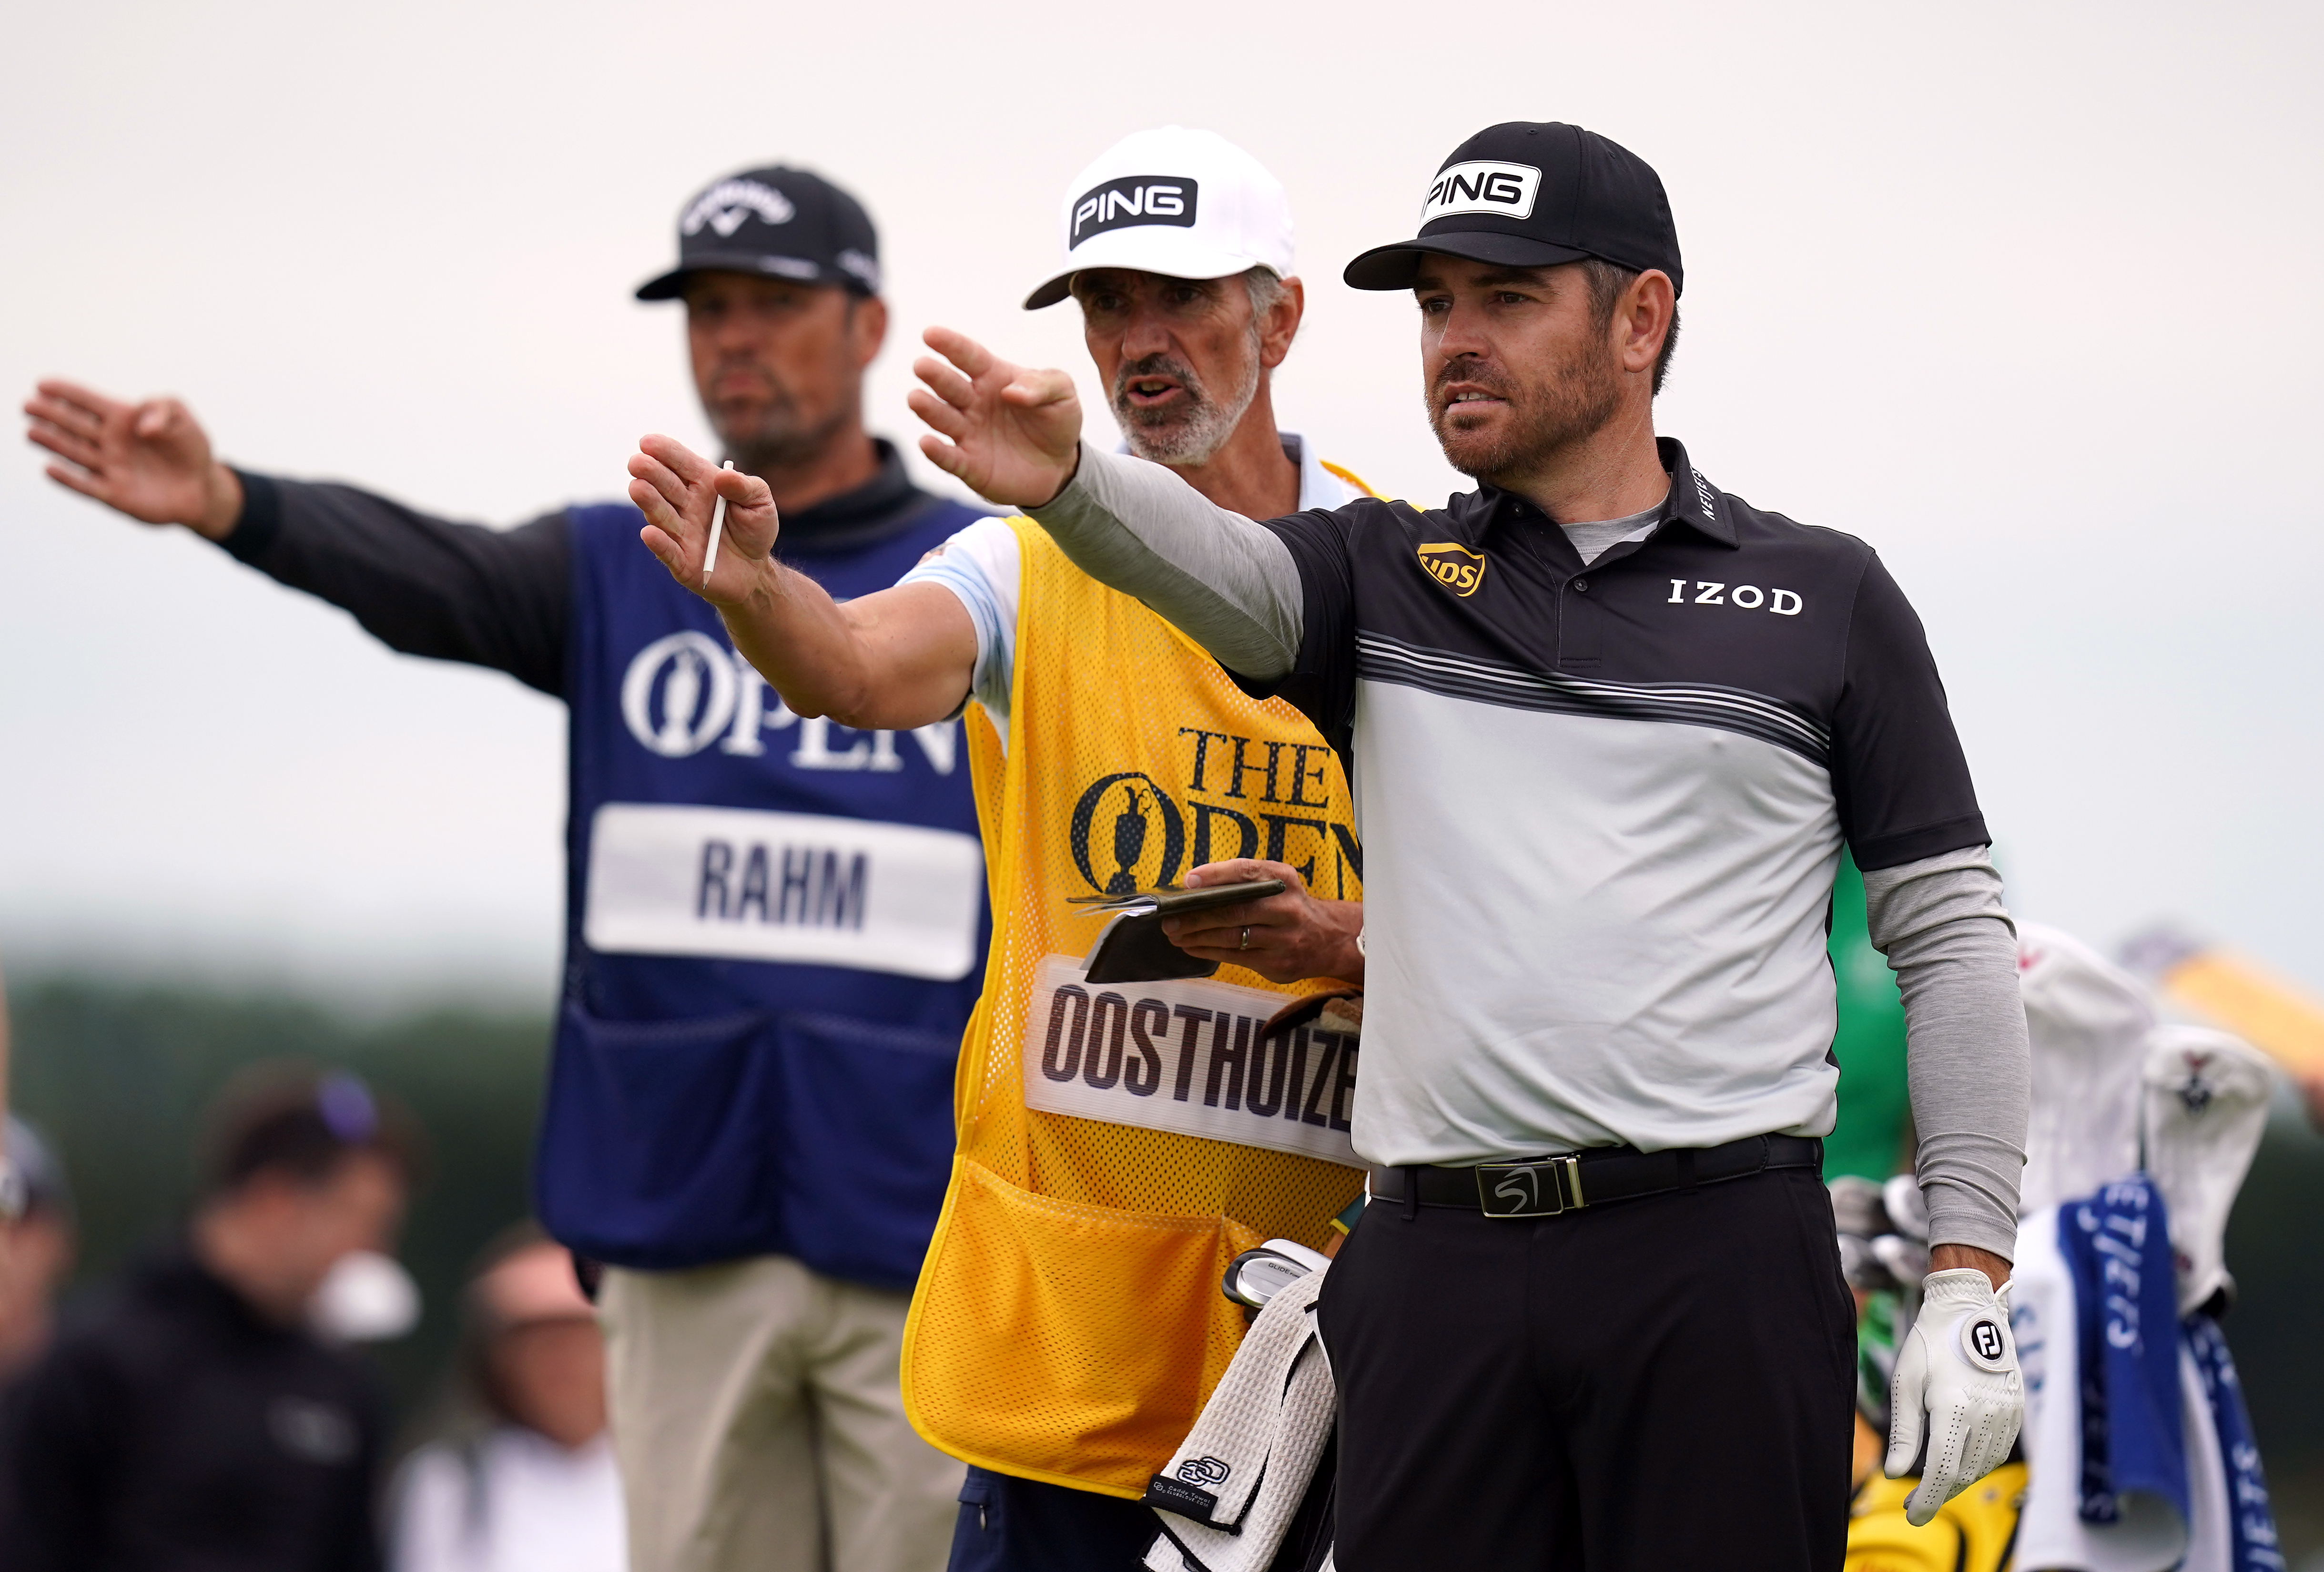 <p>South Africa's Louis Oosthuizen lines up a shot on the 16th tee with the help of his caddie during day one of The Open at The Royal St George's Golf Club in Sandwich, Kent. Picture date: Thursday July 15, 2021.</p>